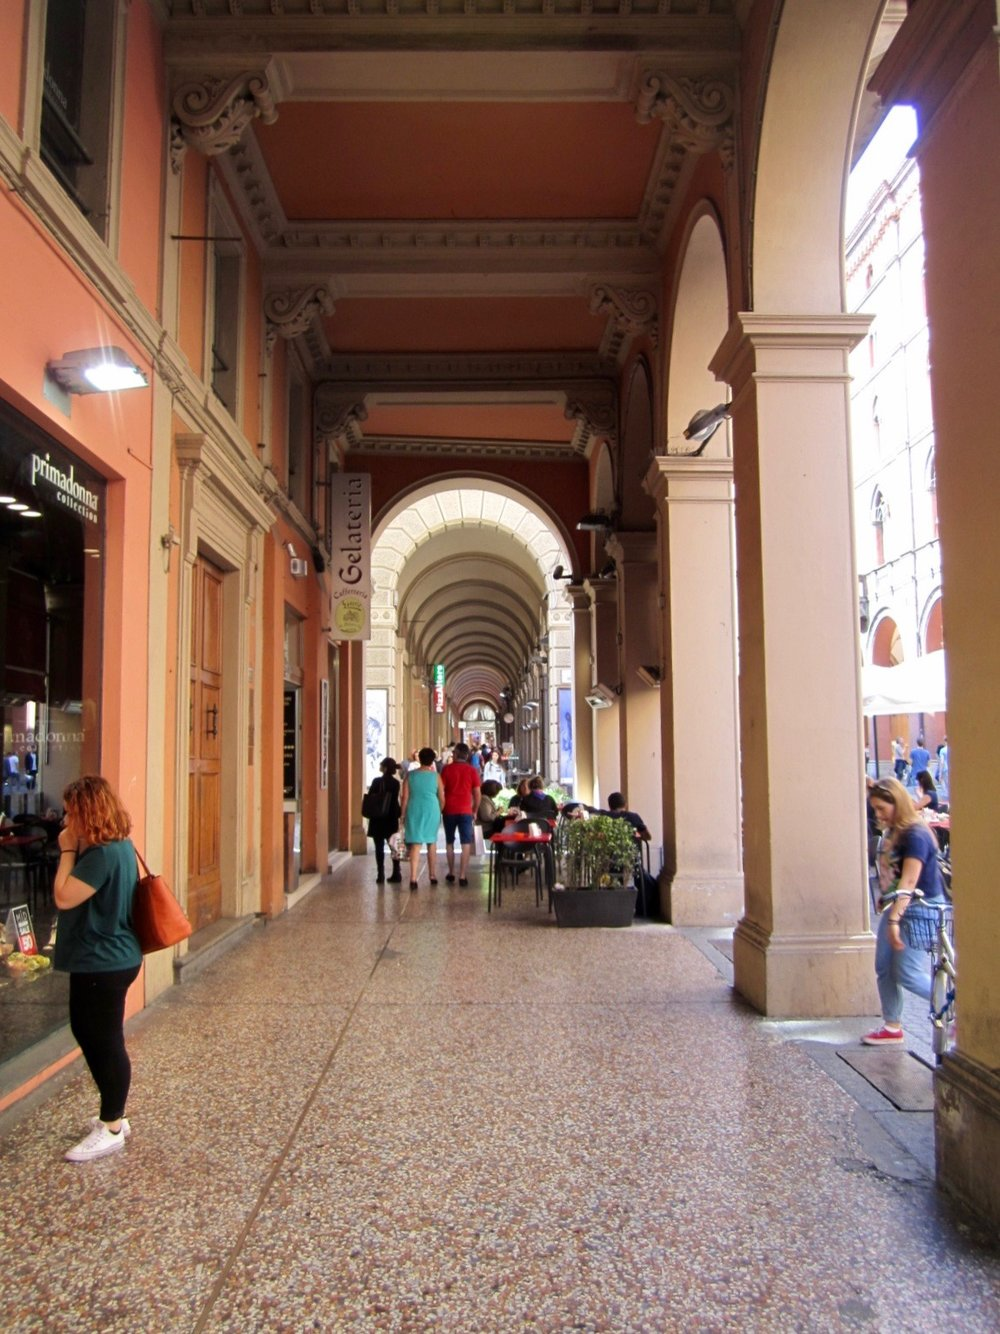 Bologna is known for its beautiful archways and burnt orange buildings, which provide much needed shade from the scorching sun,